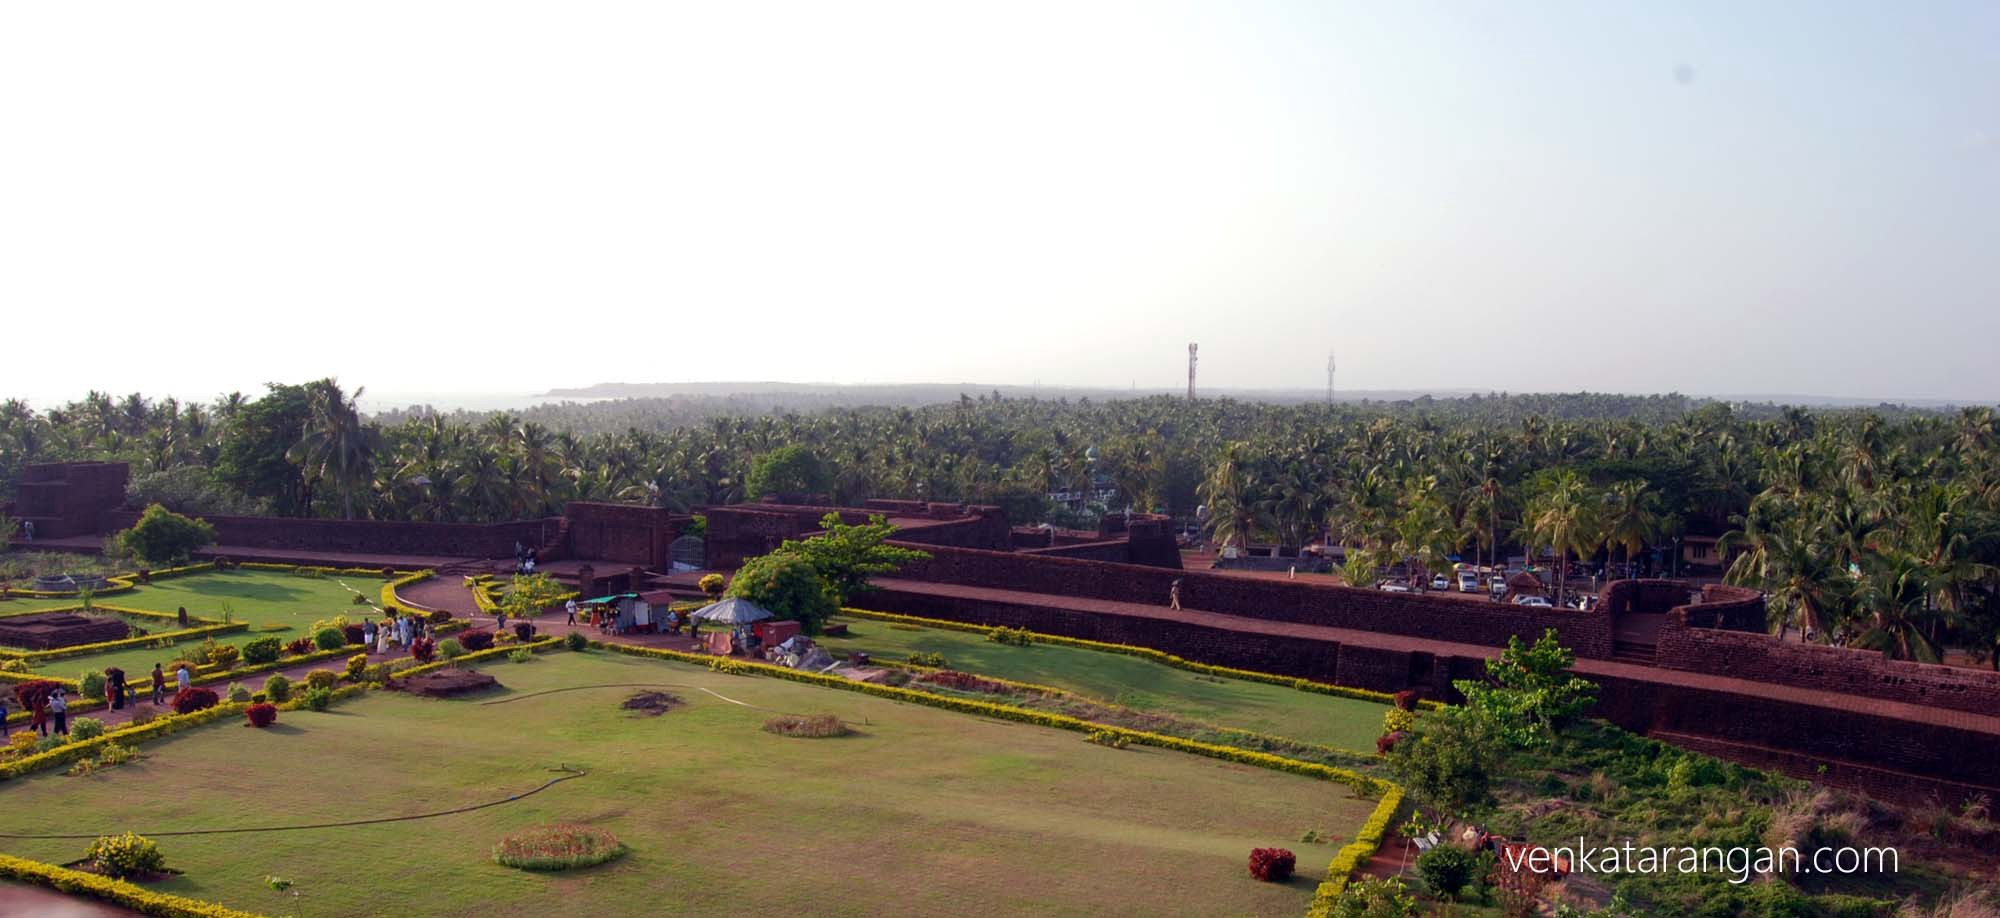 Bekal fort's outer walls are tall